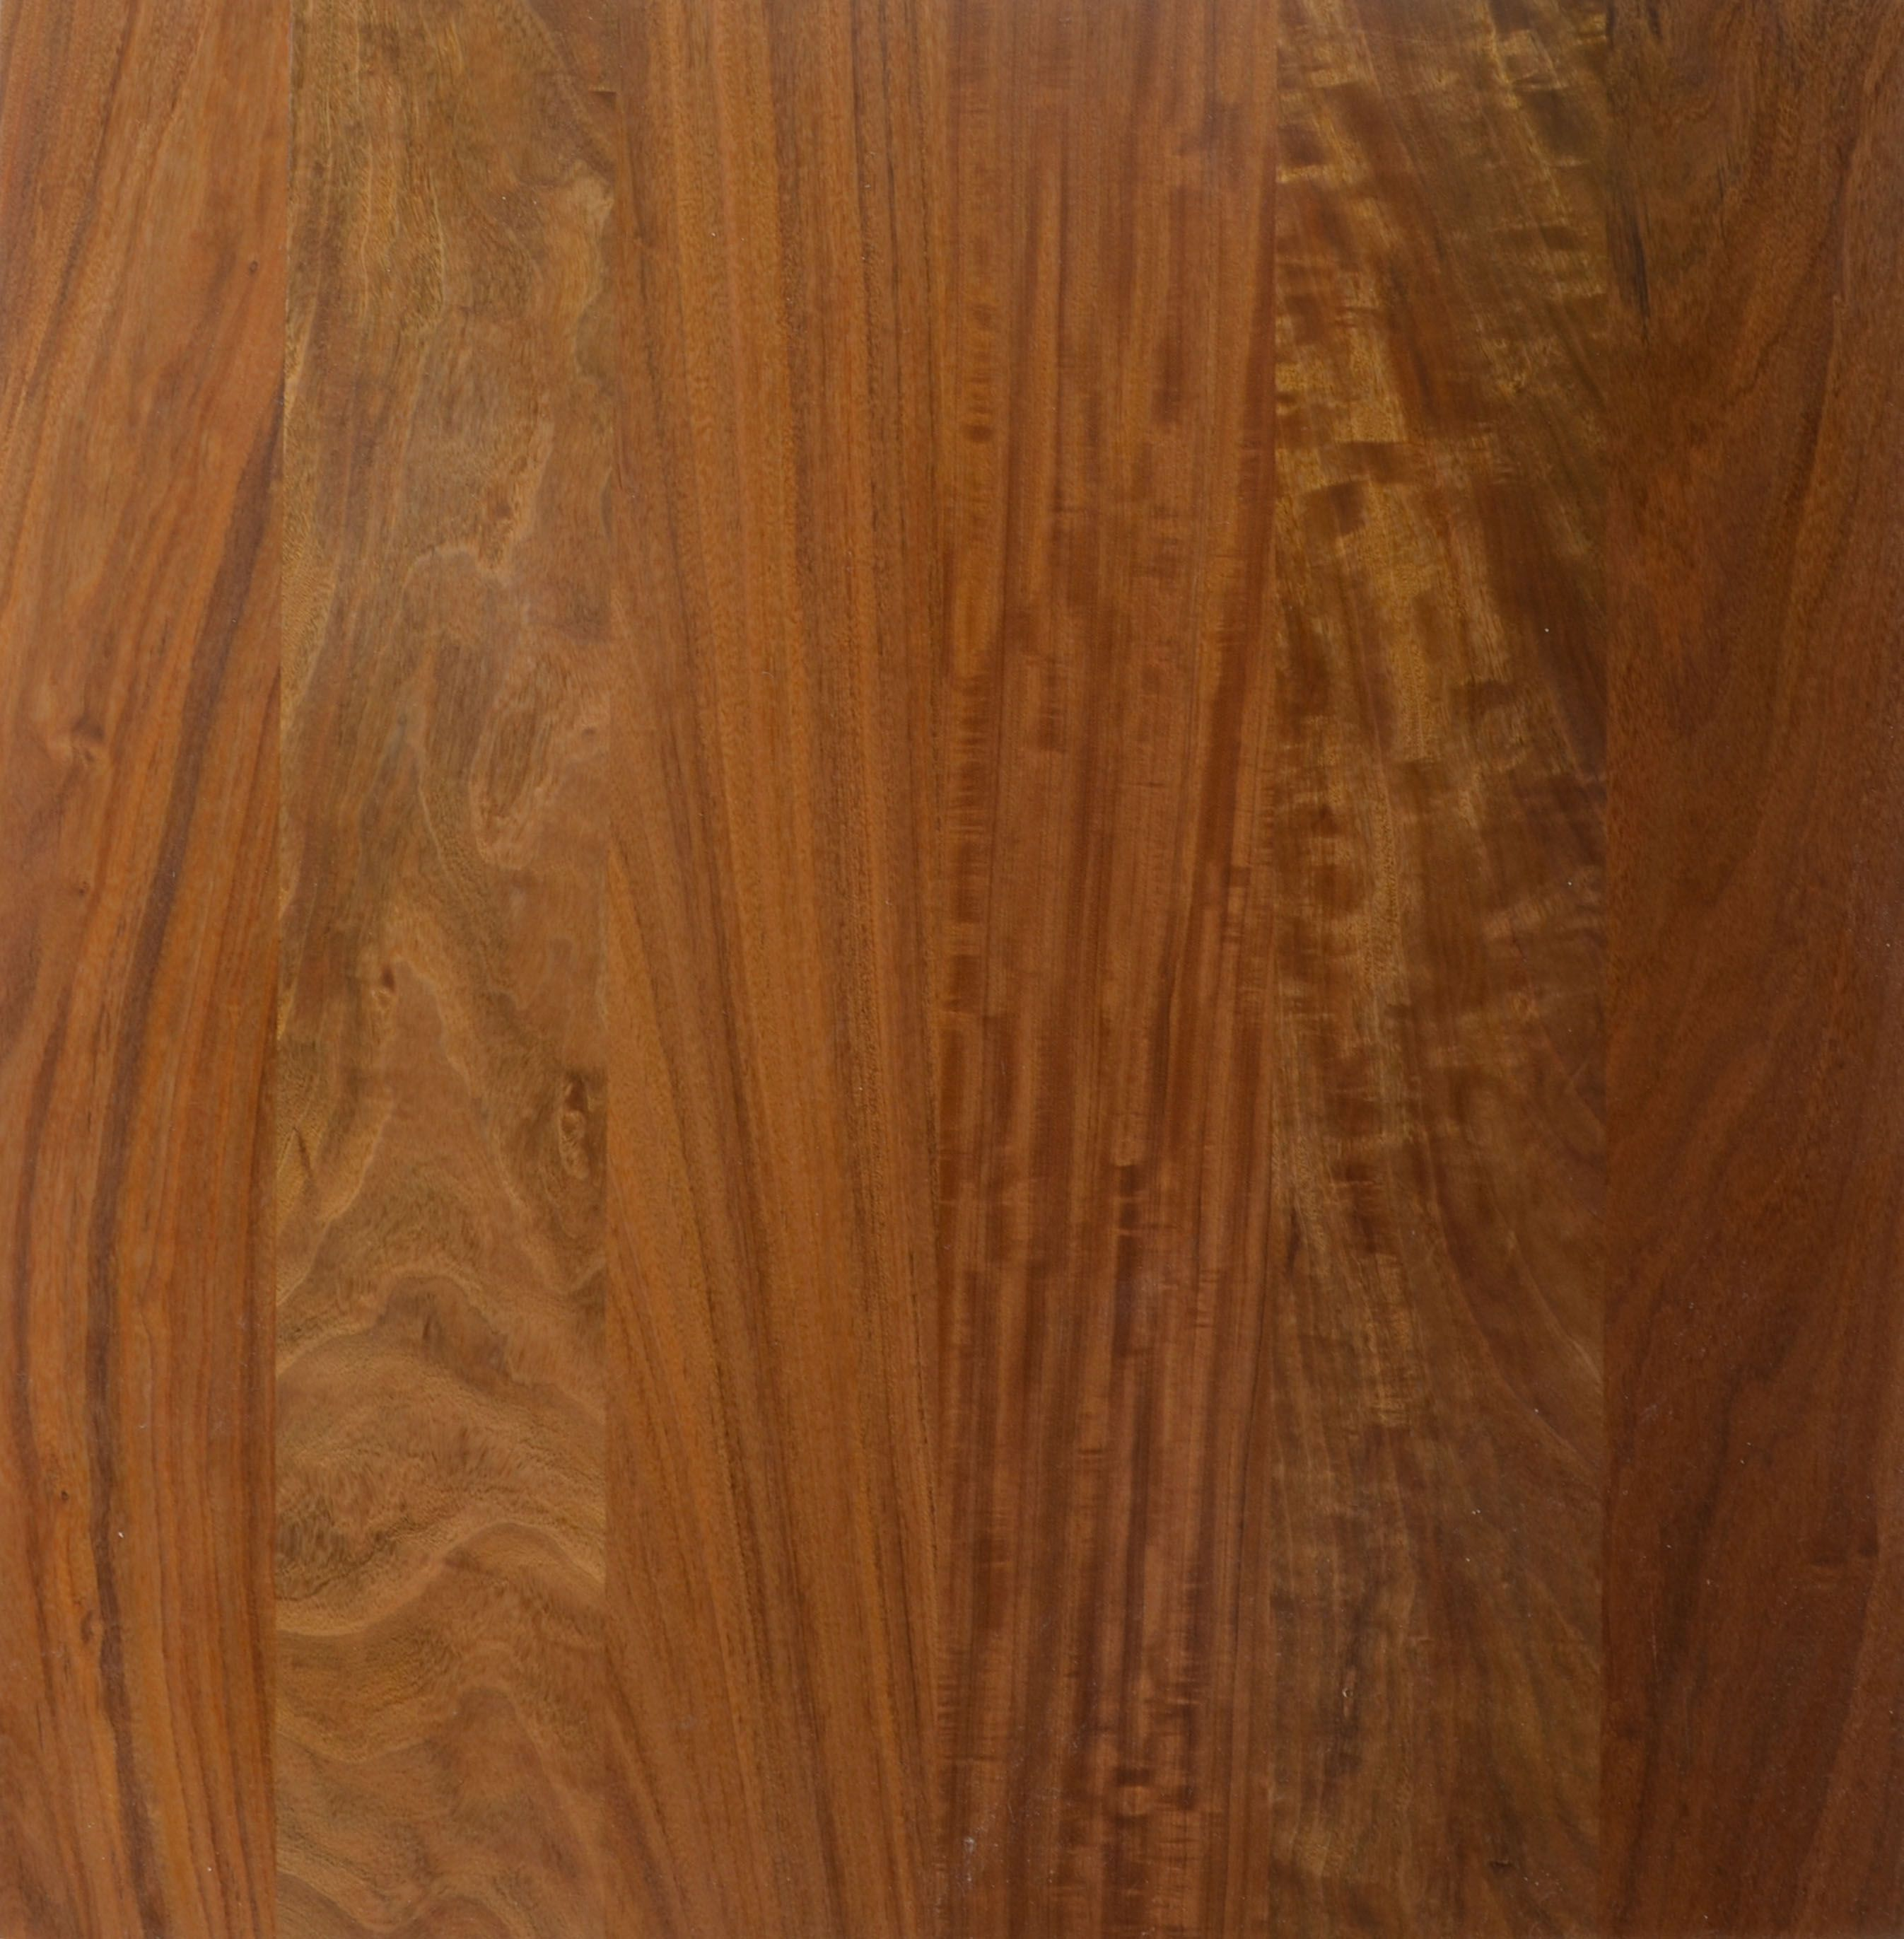 Our Exotic Hardwood Flooring